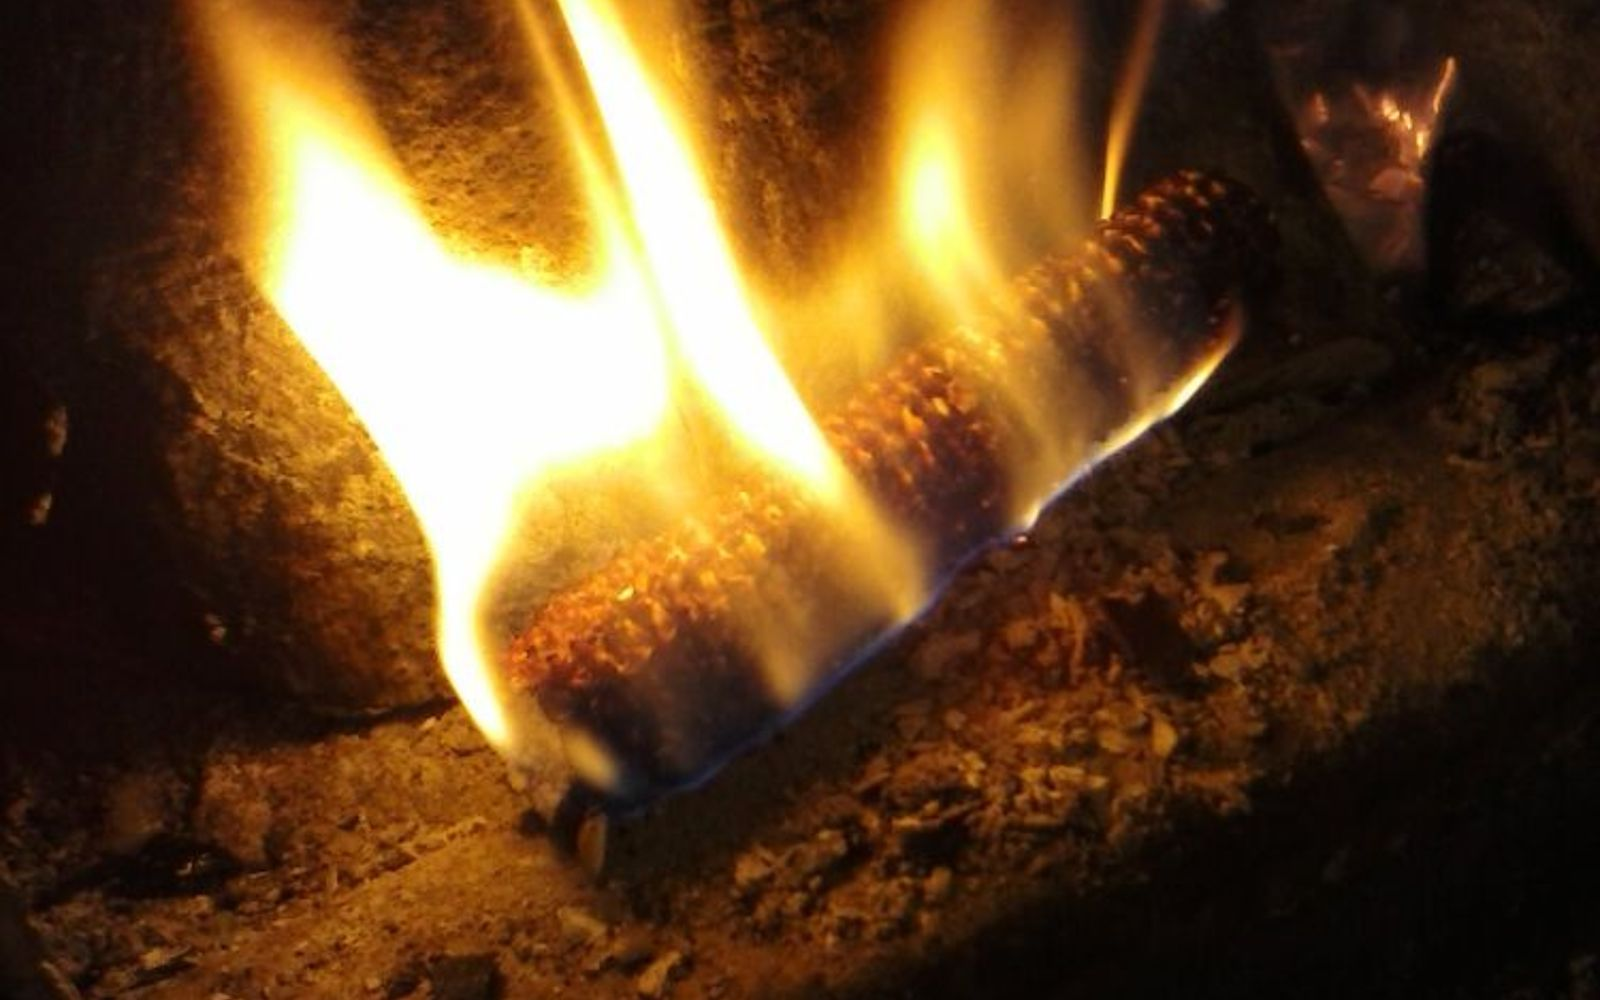 s 9 free fire starters for your summer bbqs, fireplaces mantels, outdoor living, repurposing upcycling, Soak corncobs in olive oil lamp oil